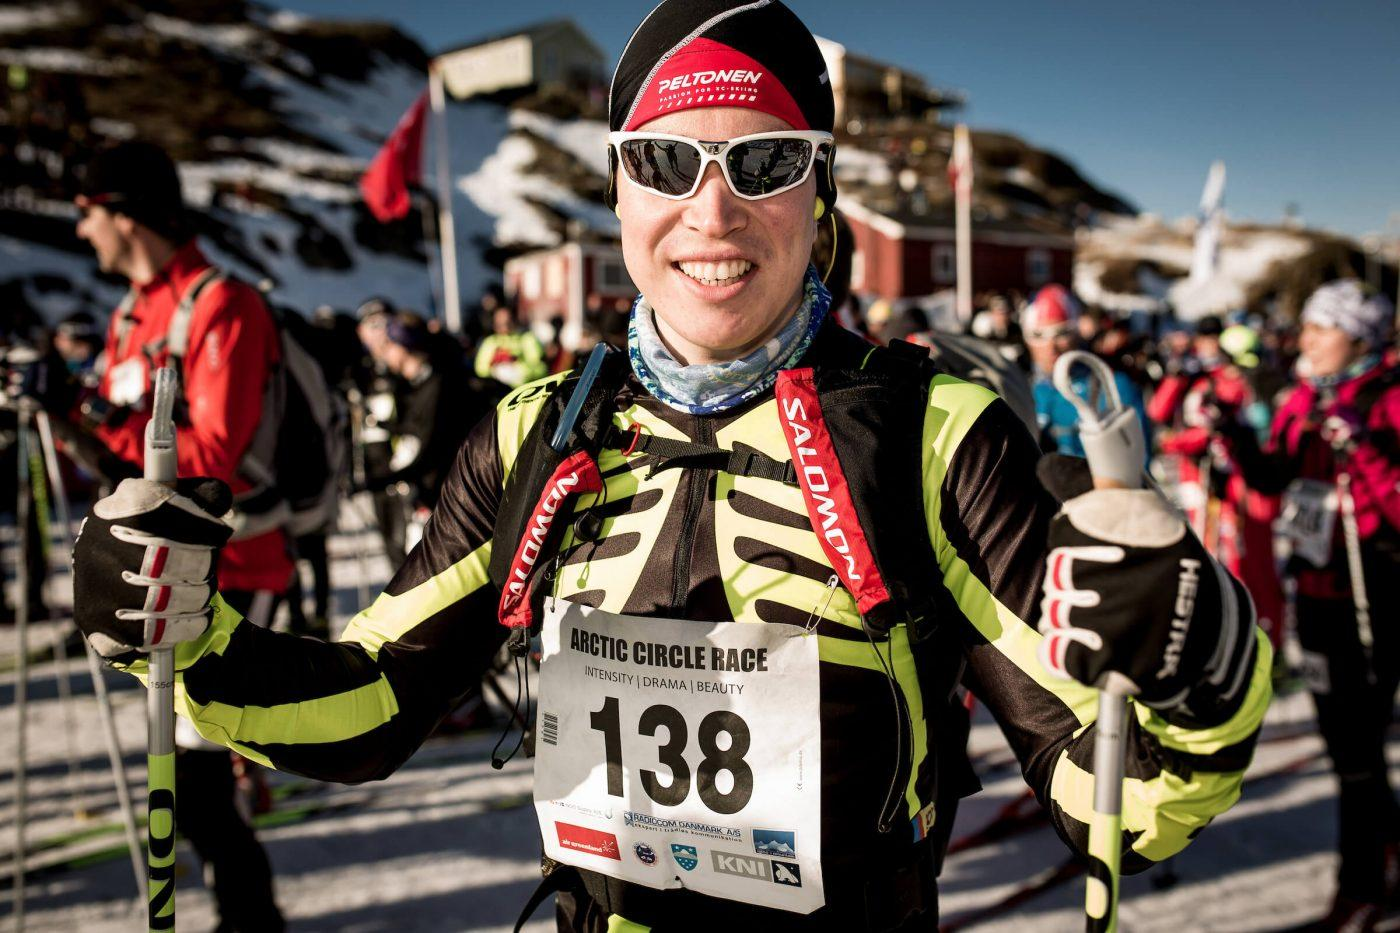 Arctic Circle Race skier preparing for the race on day 1. Photo by Mas Pihl, Visit Greenland